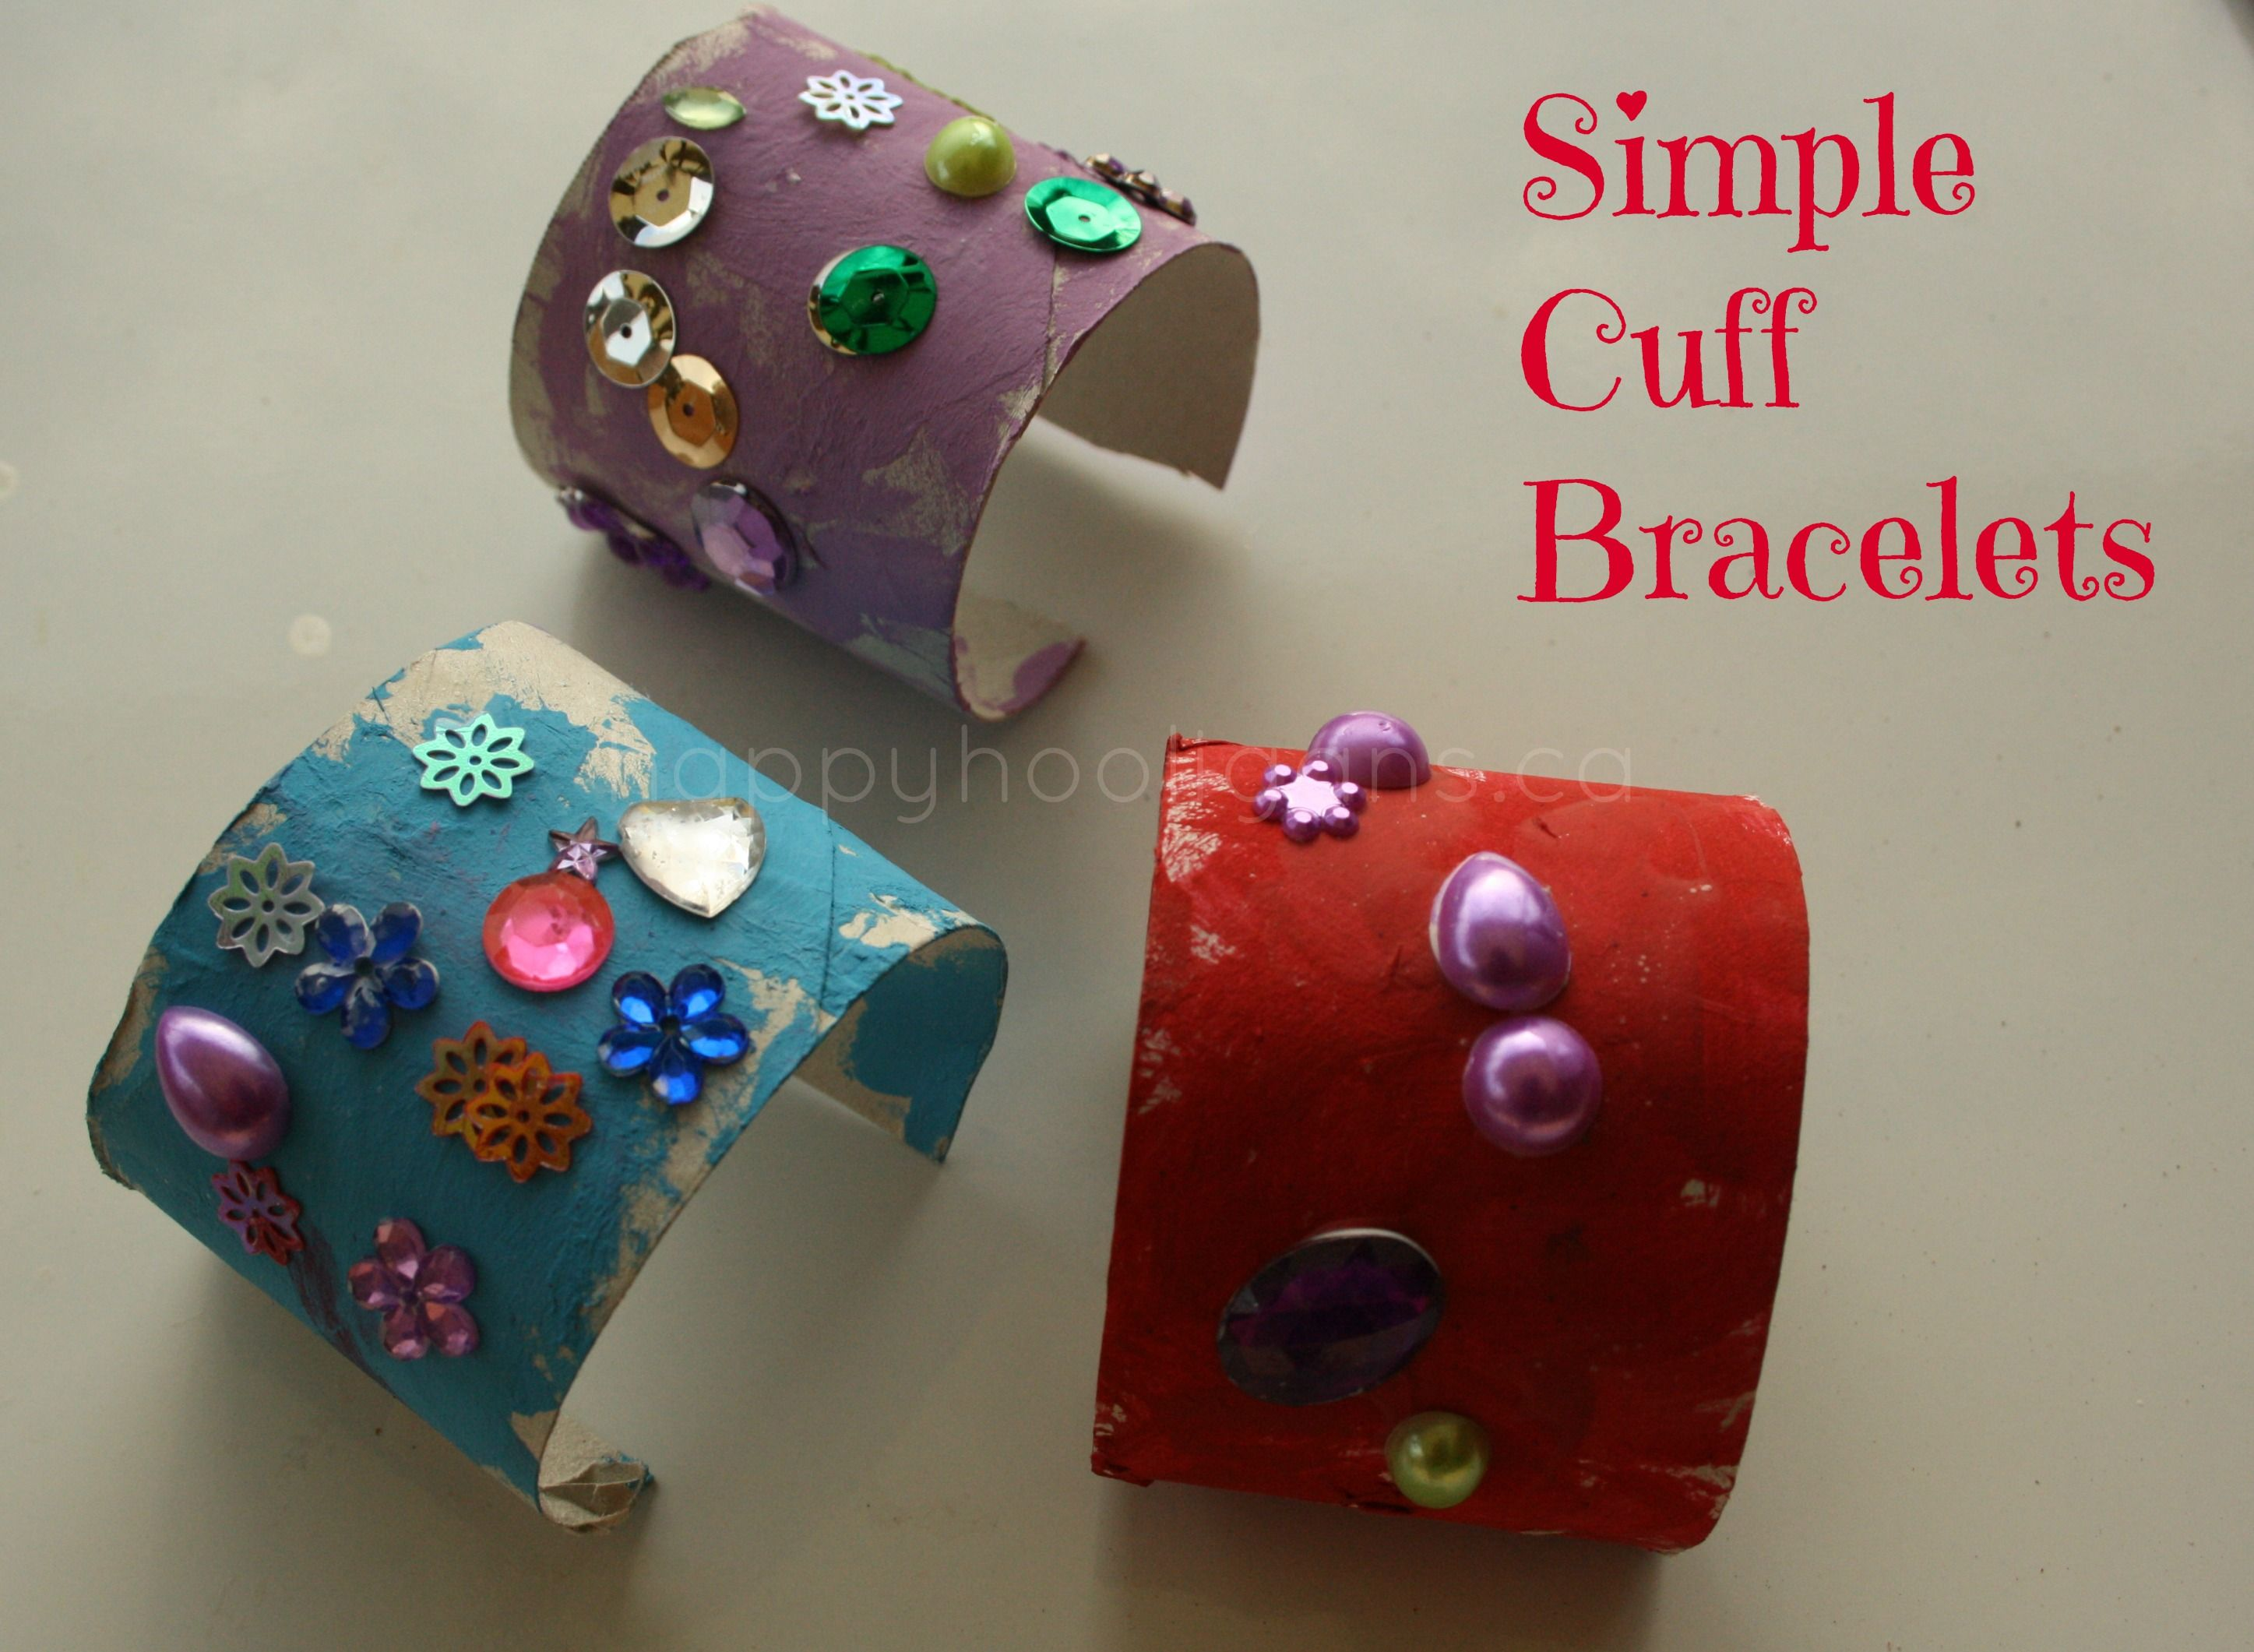 Cardboard Roll Bracelet Craft For Toddlers And